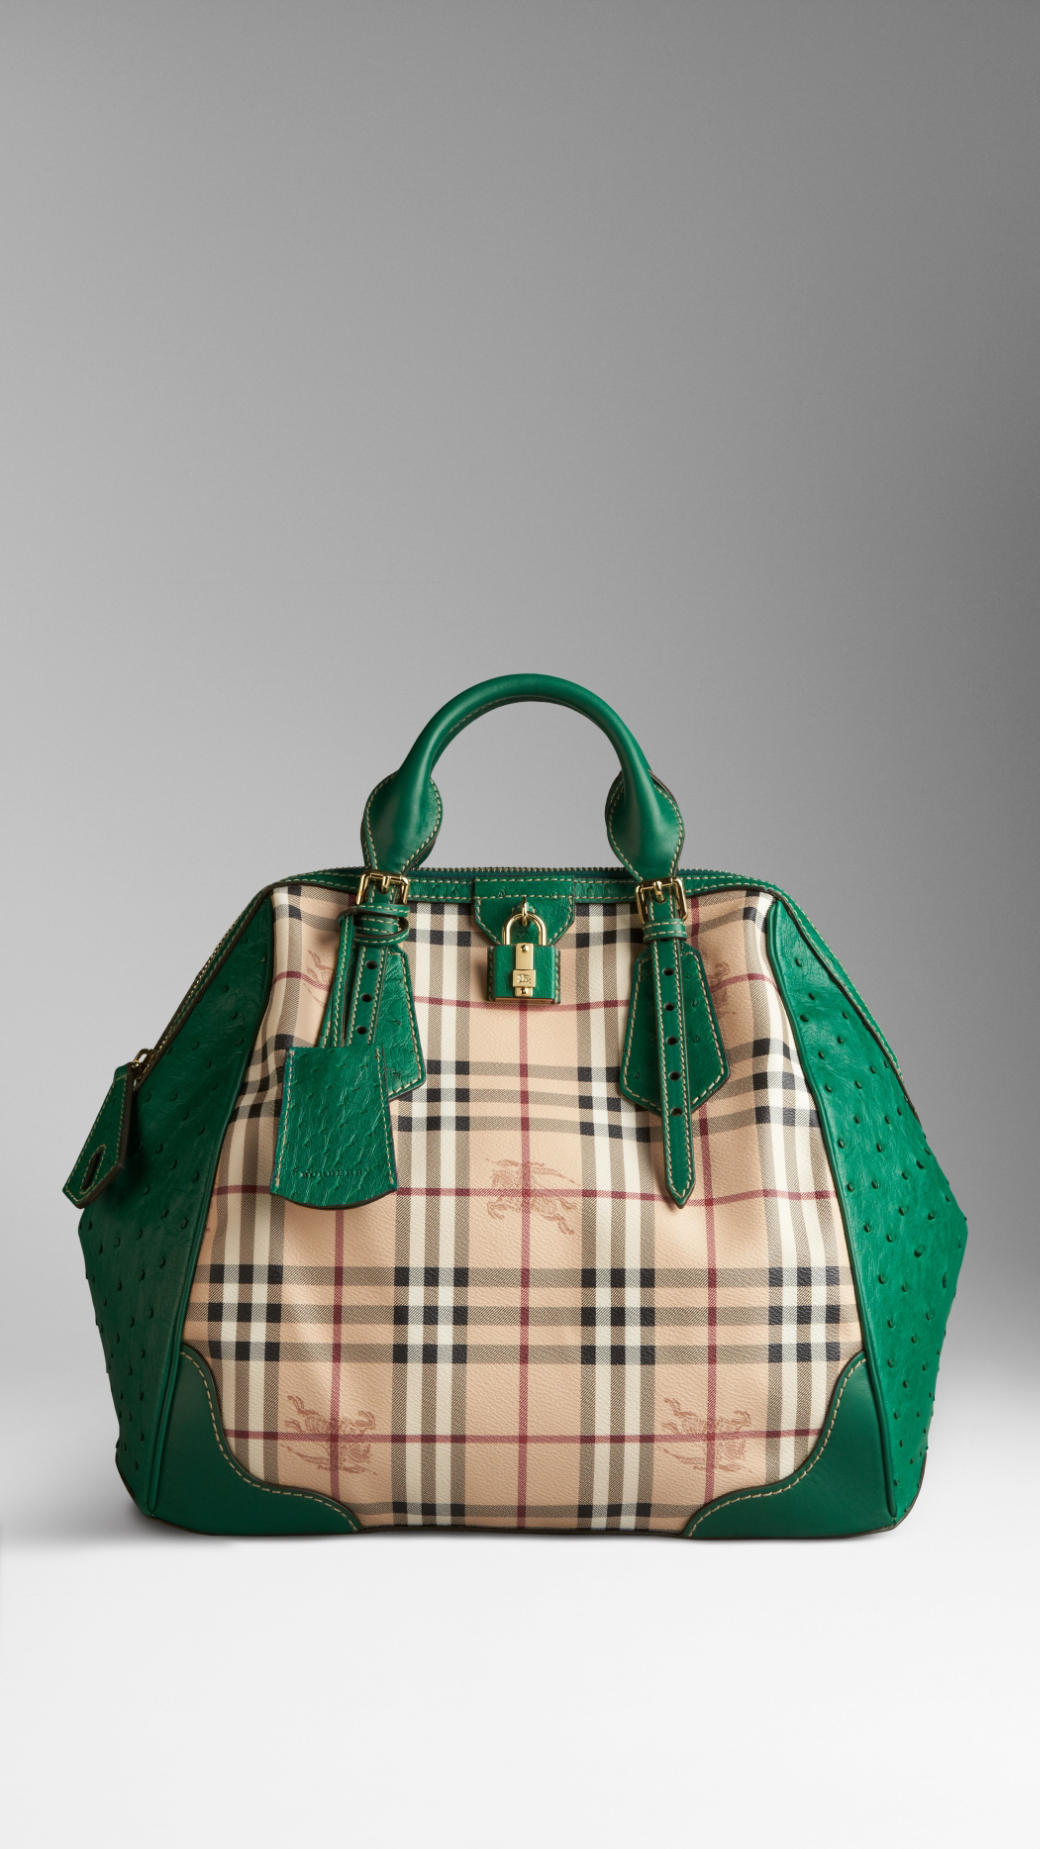 Sac Burberry The Blaze en check et autruche